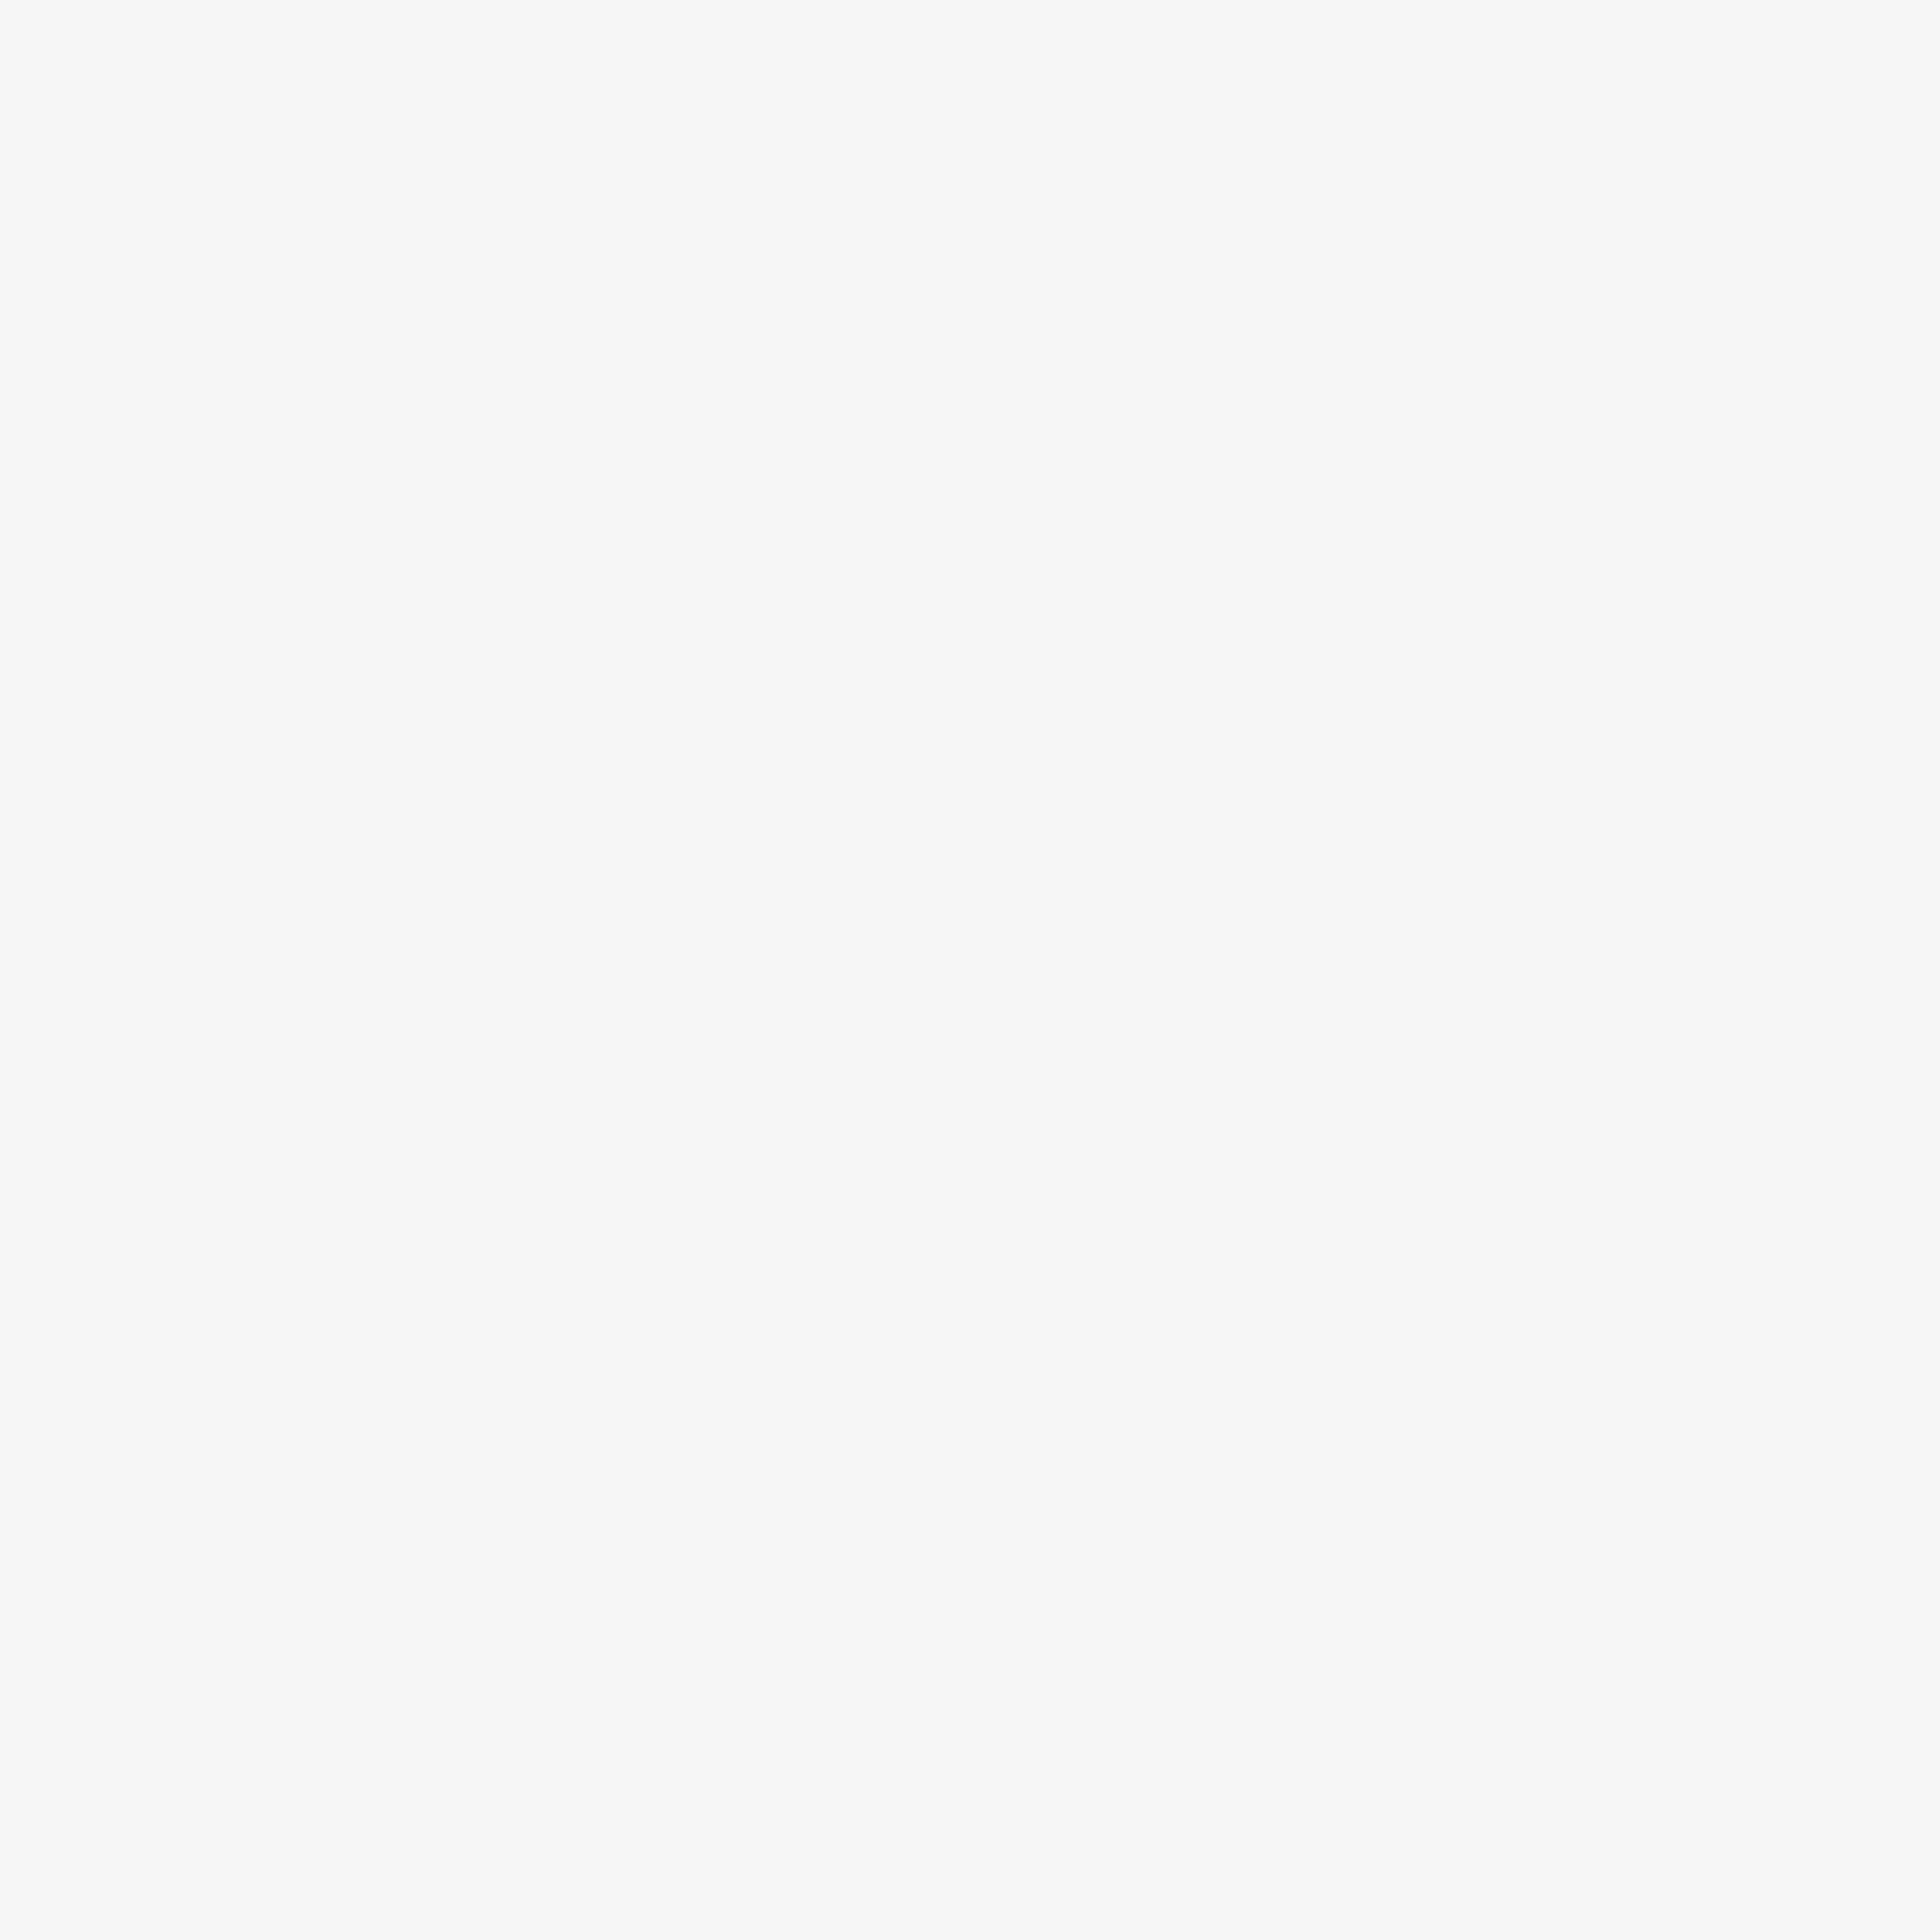 Saint Germain ankle boot   Herm    s Legal